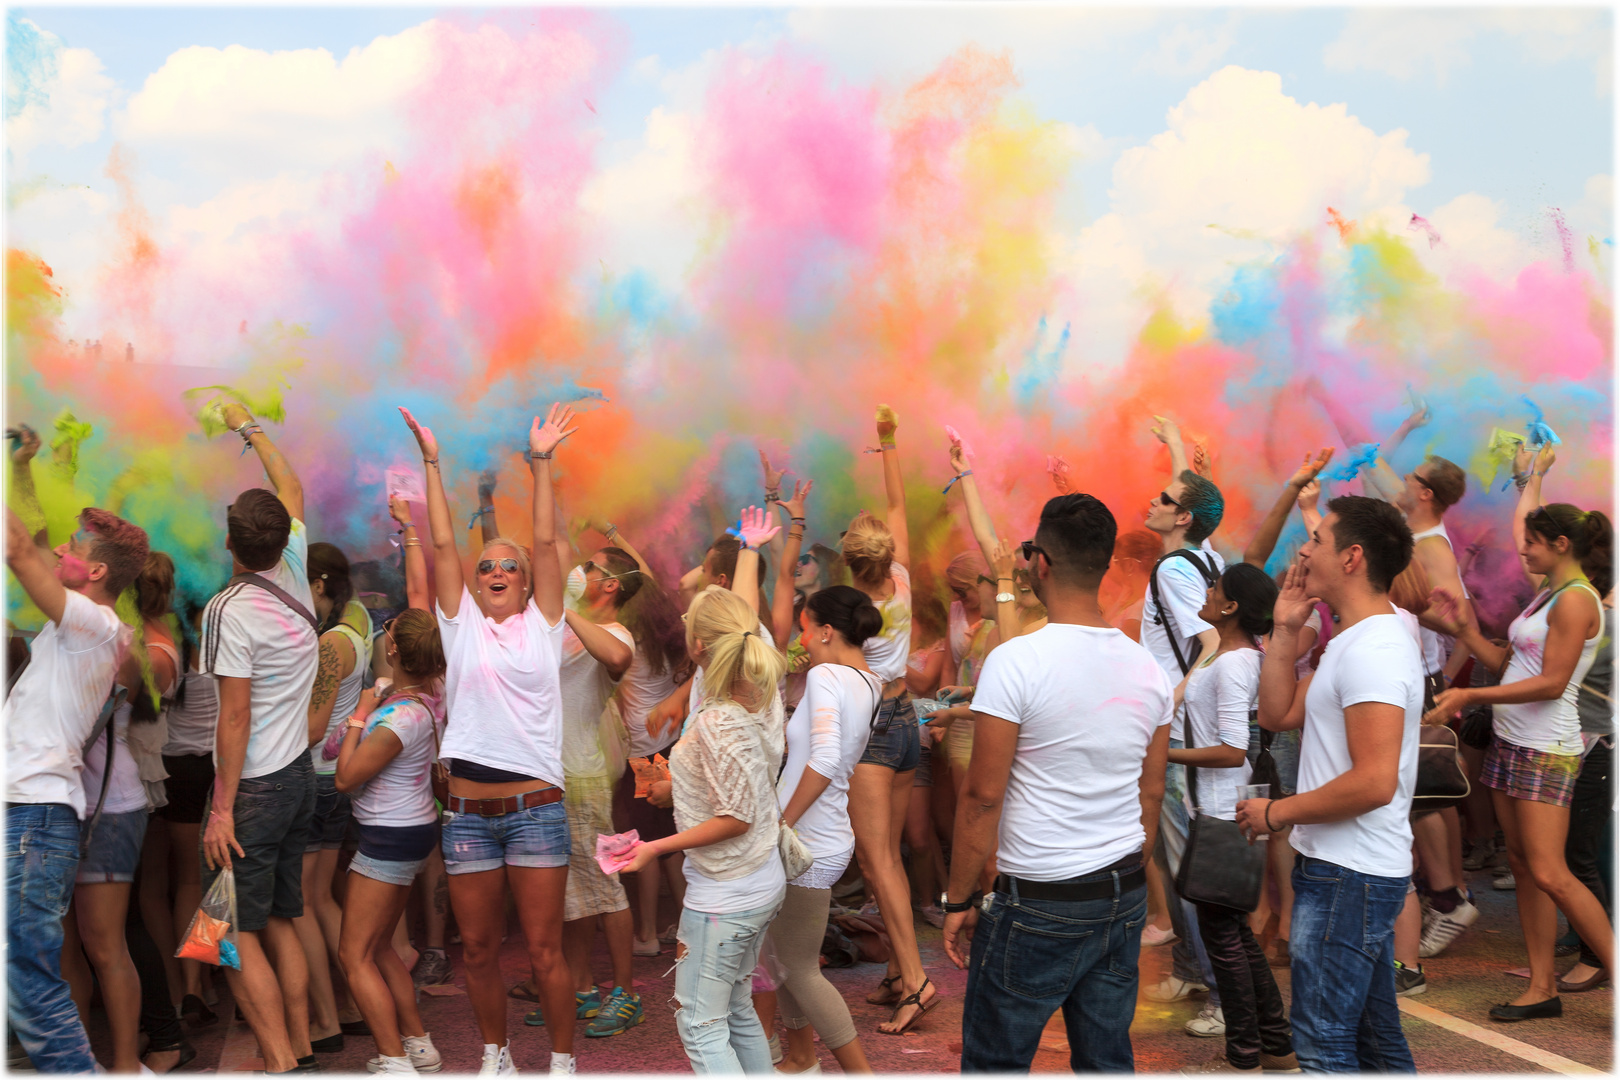 HoliFestival in Berlin